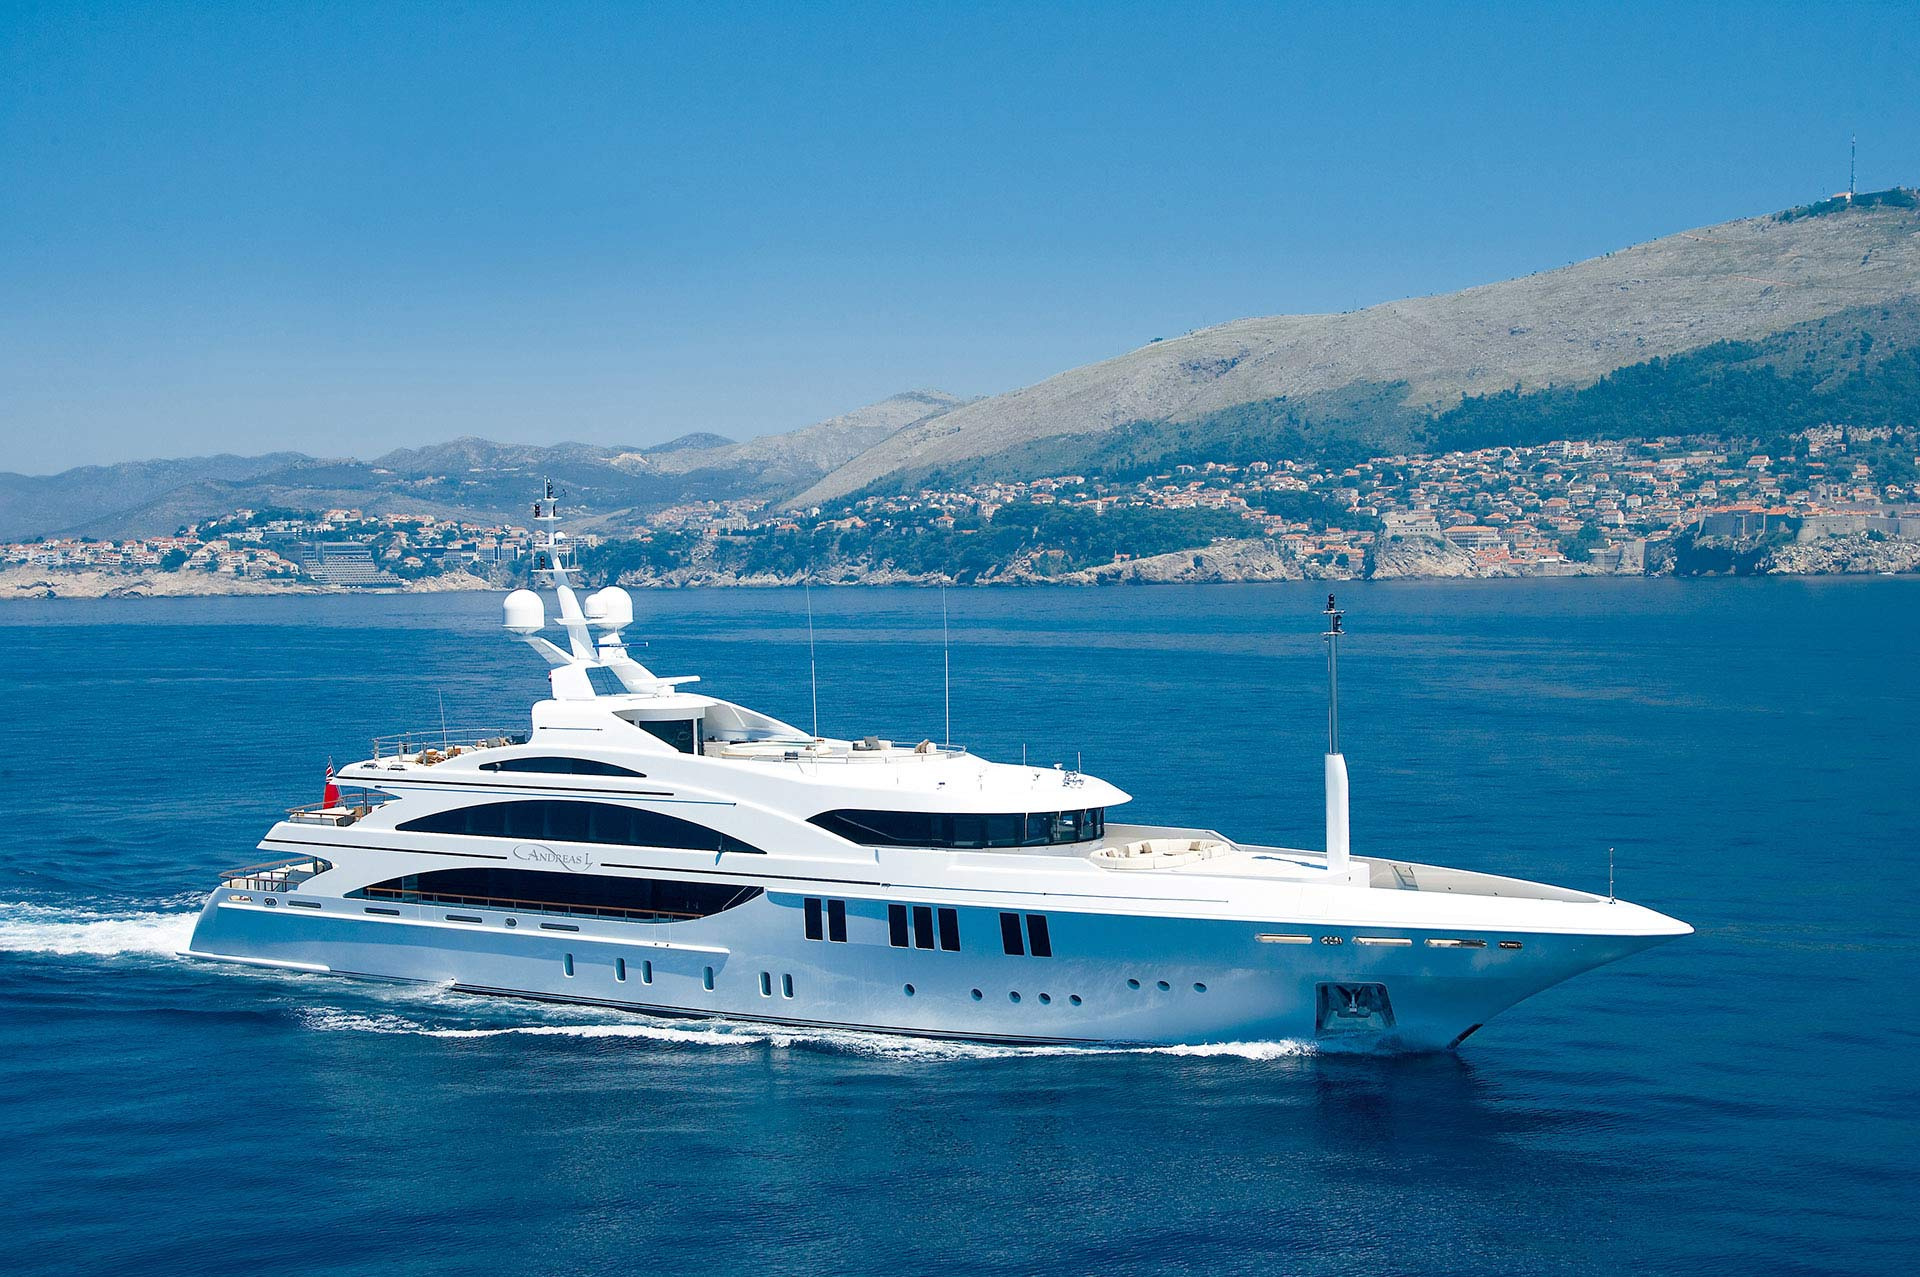 Andreas-L-Motor-Yacht-for-charter-gallery-01.jpg